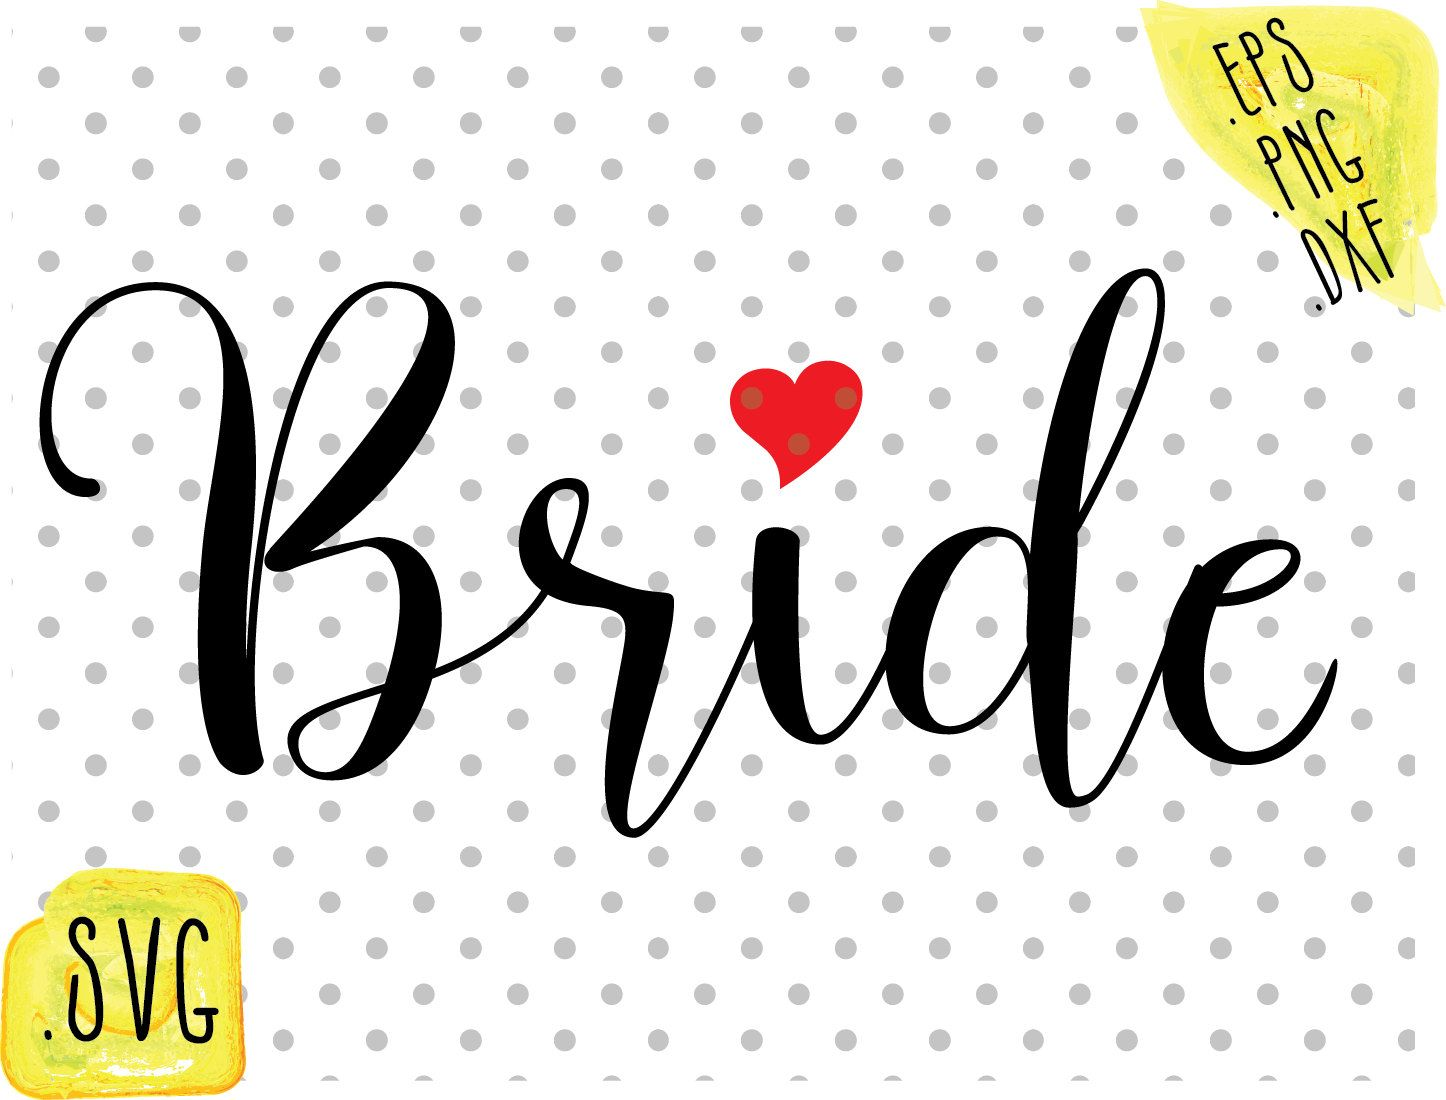 His Queen Her King Svg.Image Result For His Queen Her King Svg Weddings Pinterest